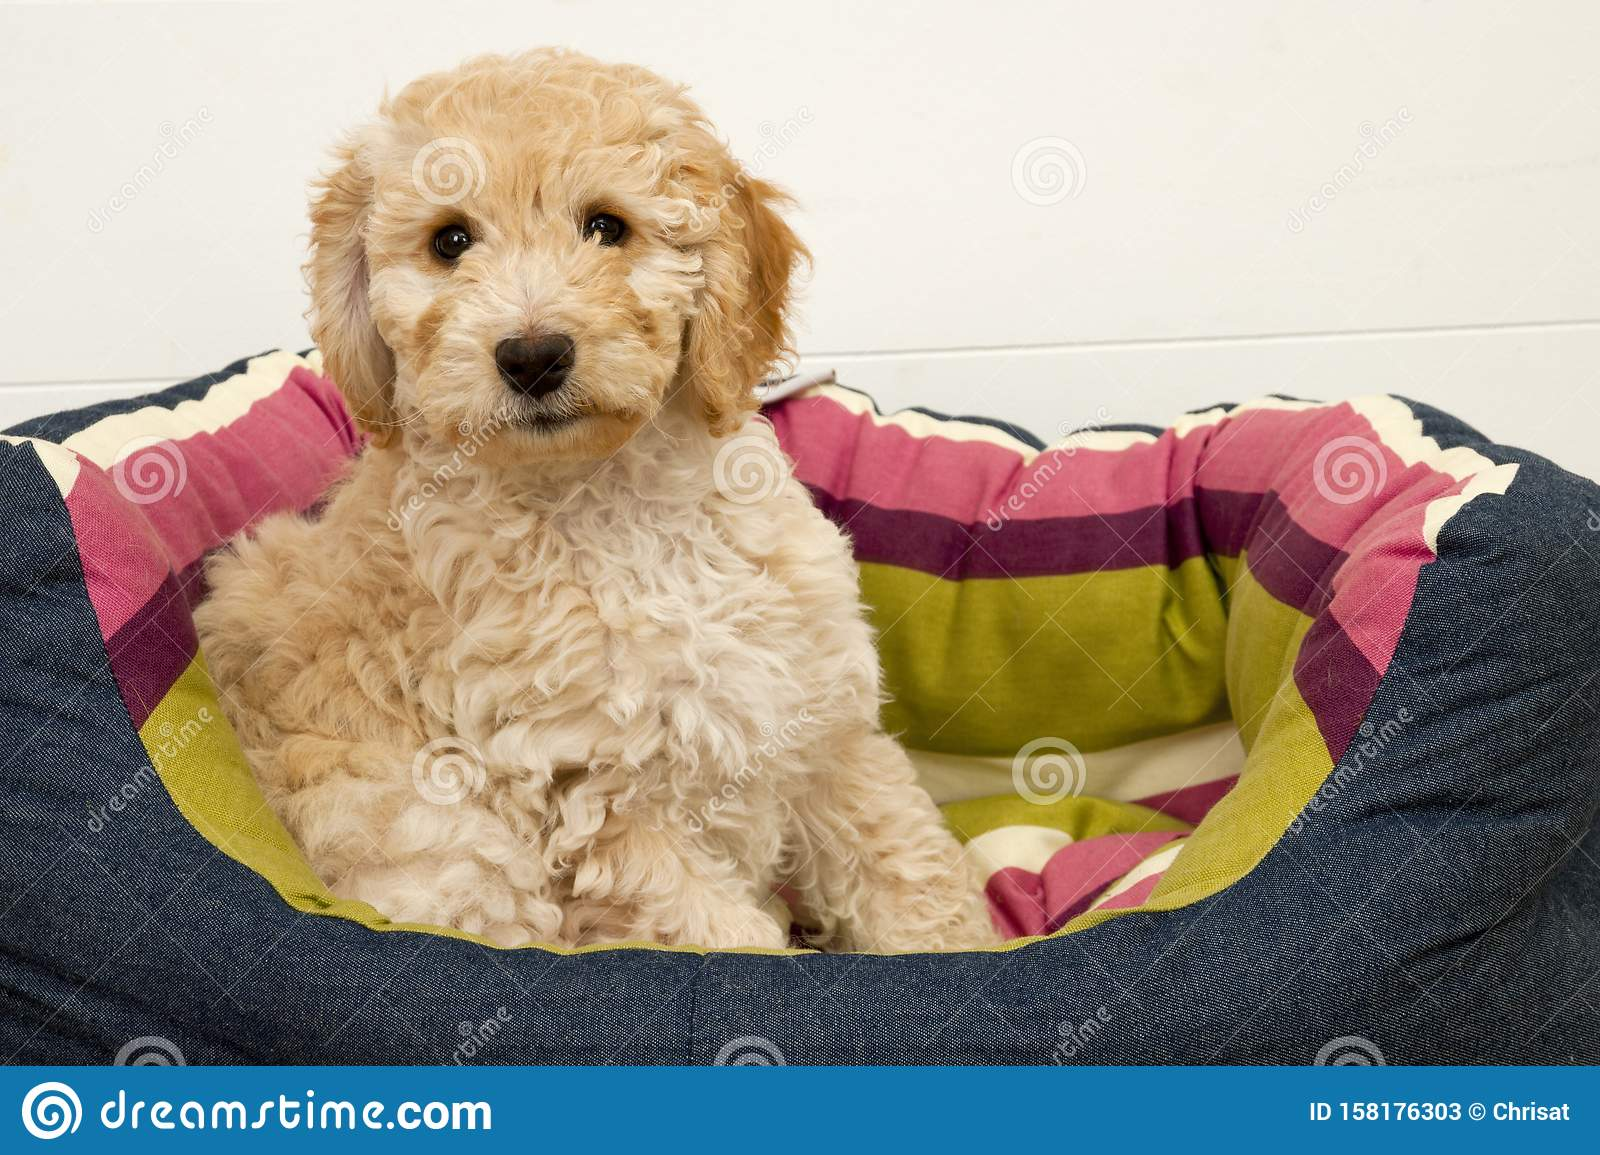 A cute Cockapoo puppy on a white background